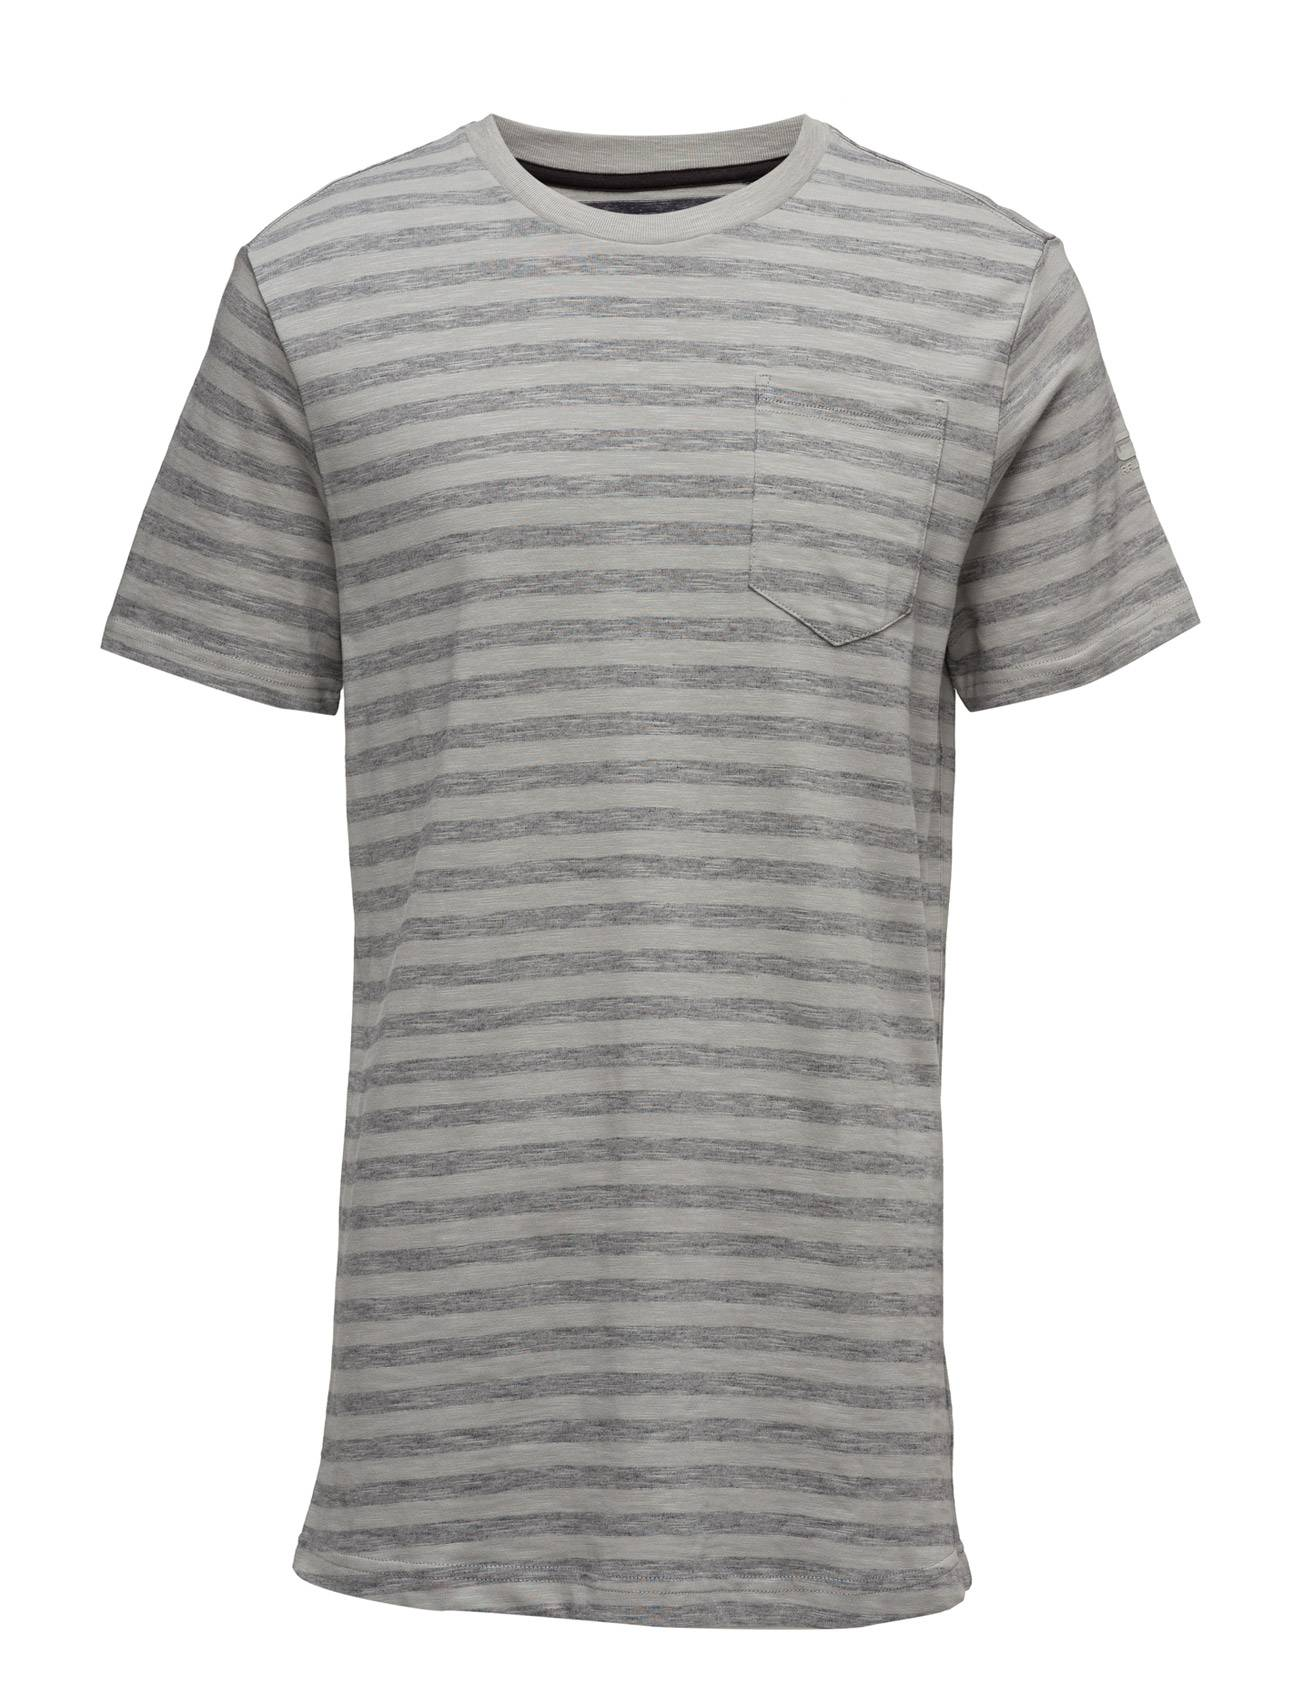 G-star Classic Relaxed Pocket R T S